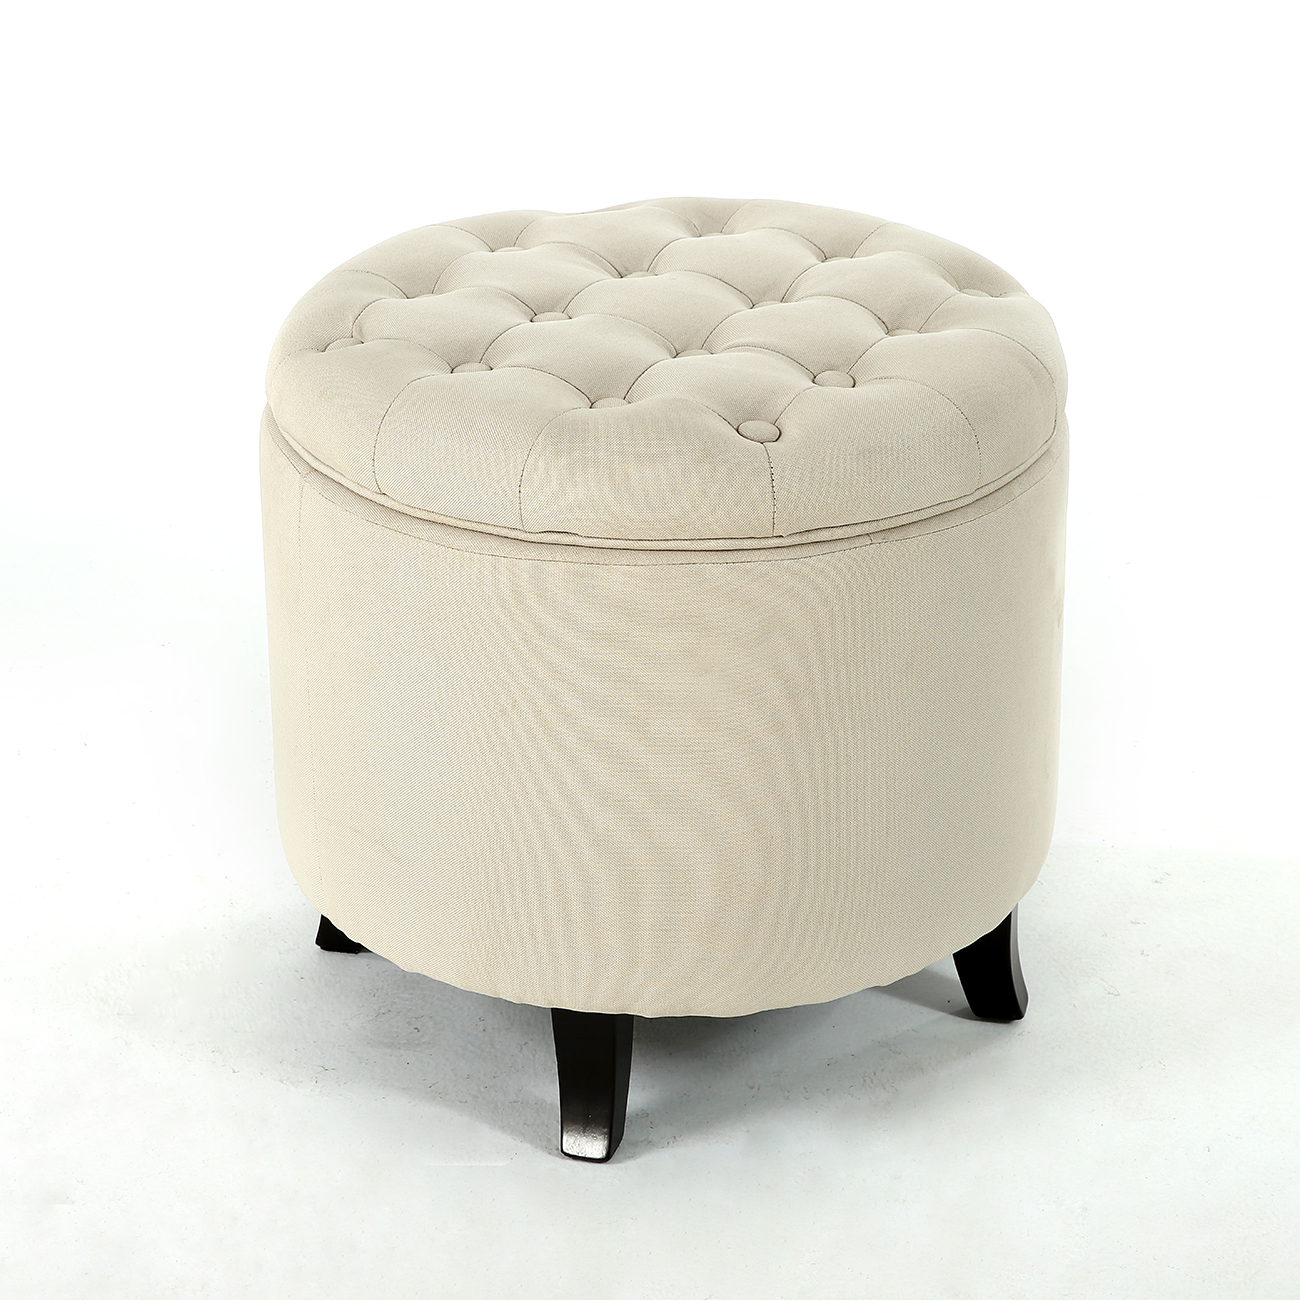 Elegant Beige Storage Ottoman Coffee Table W Button Tufted Accents Upholstered 846183165163 Ebay